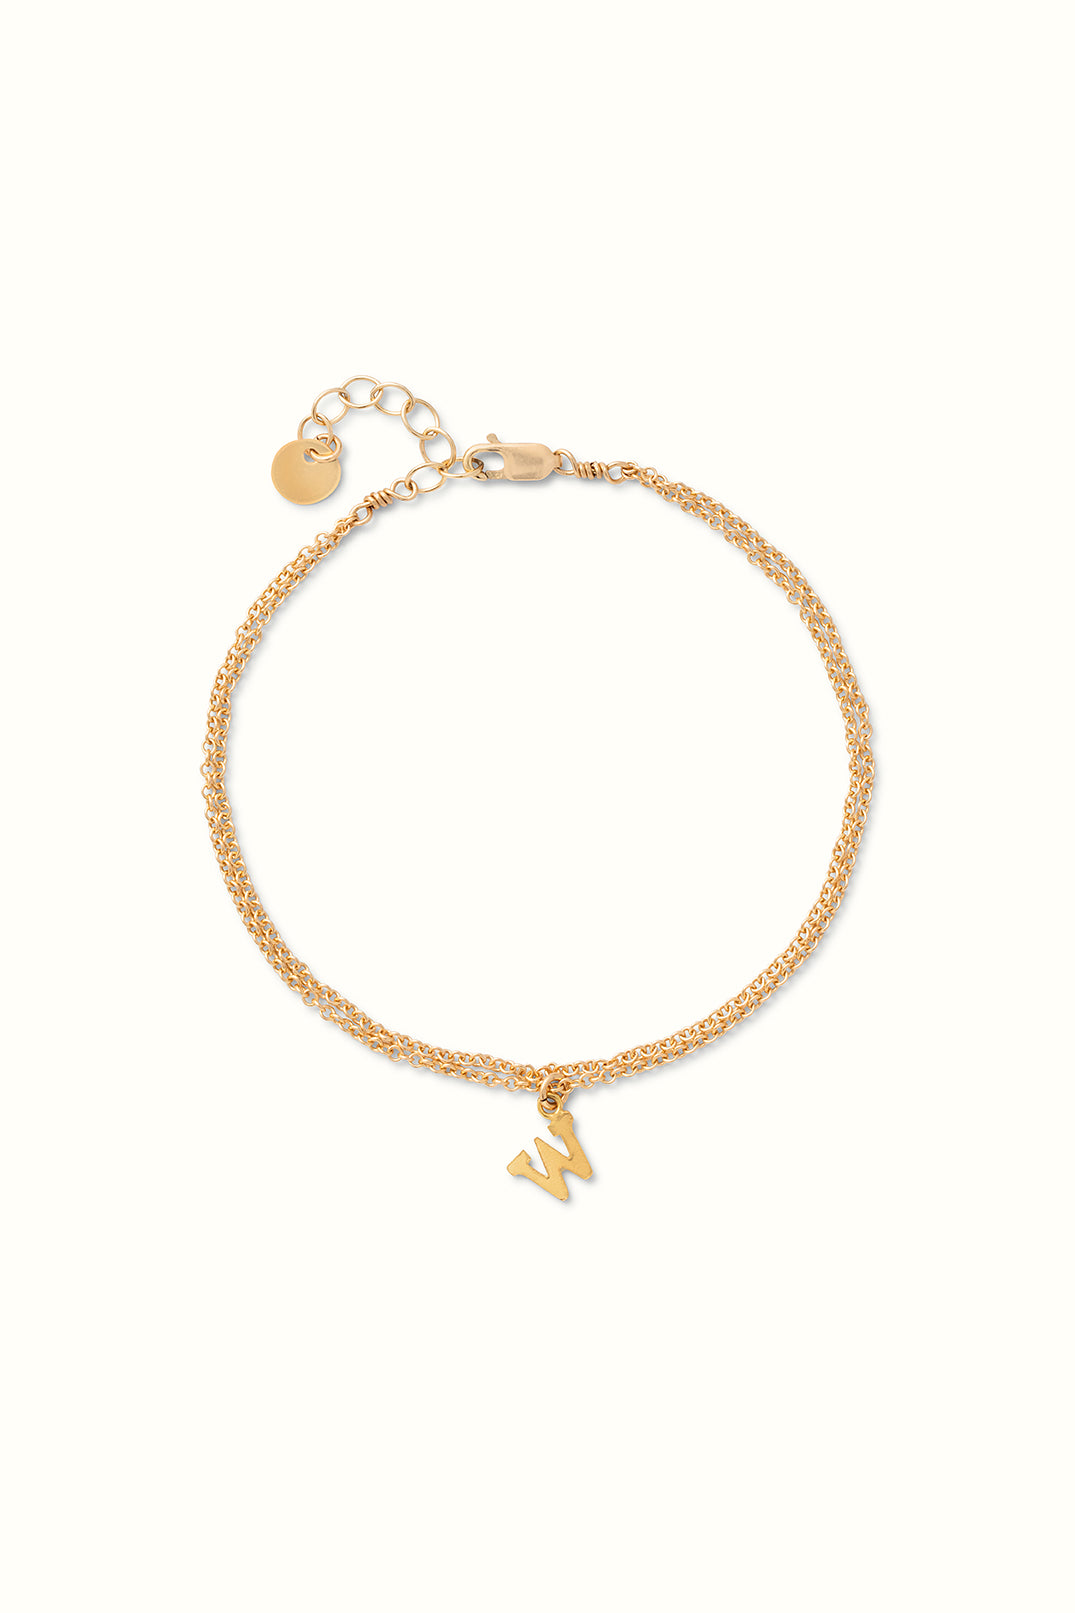 a close up of a gold filled initial chain bracelet on a white surface